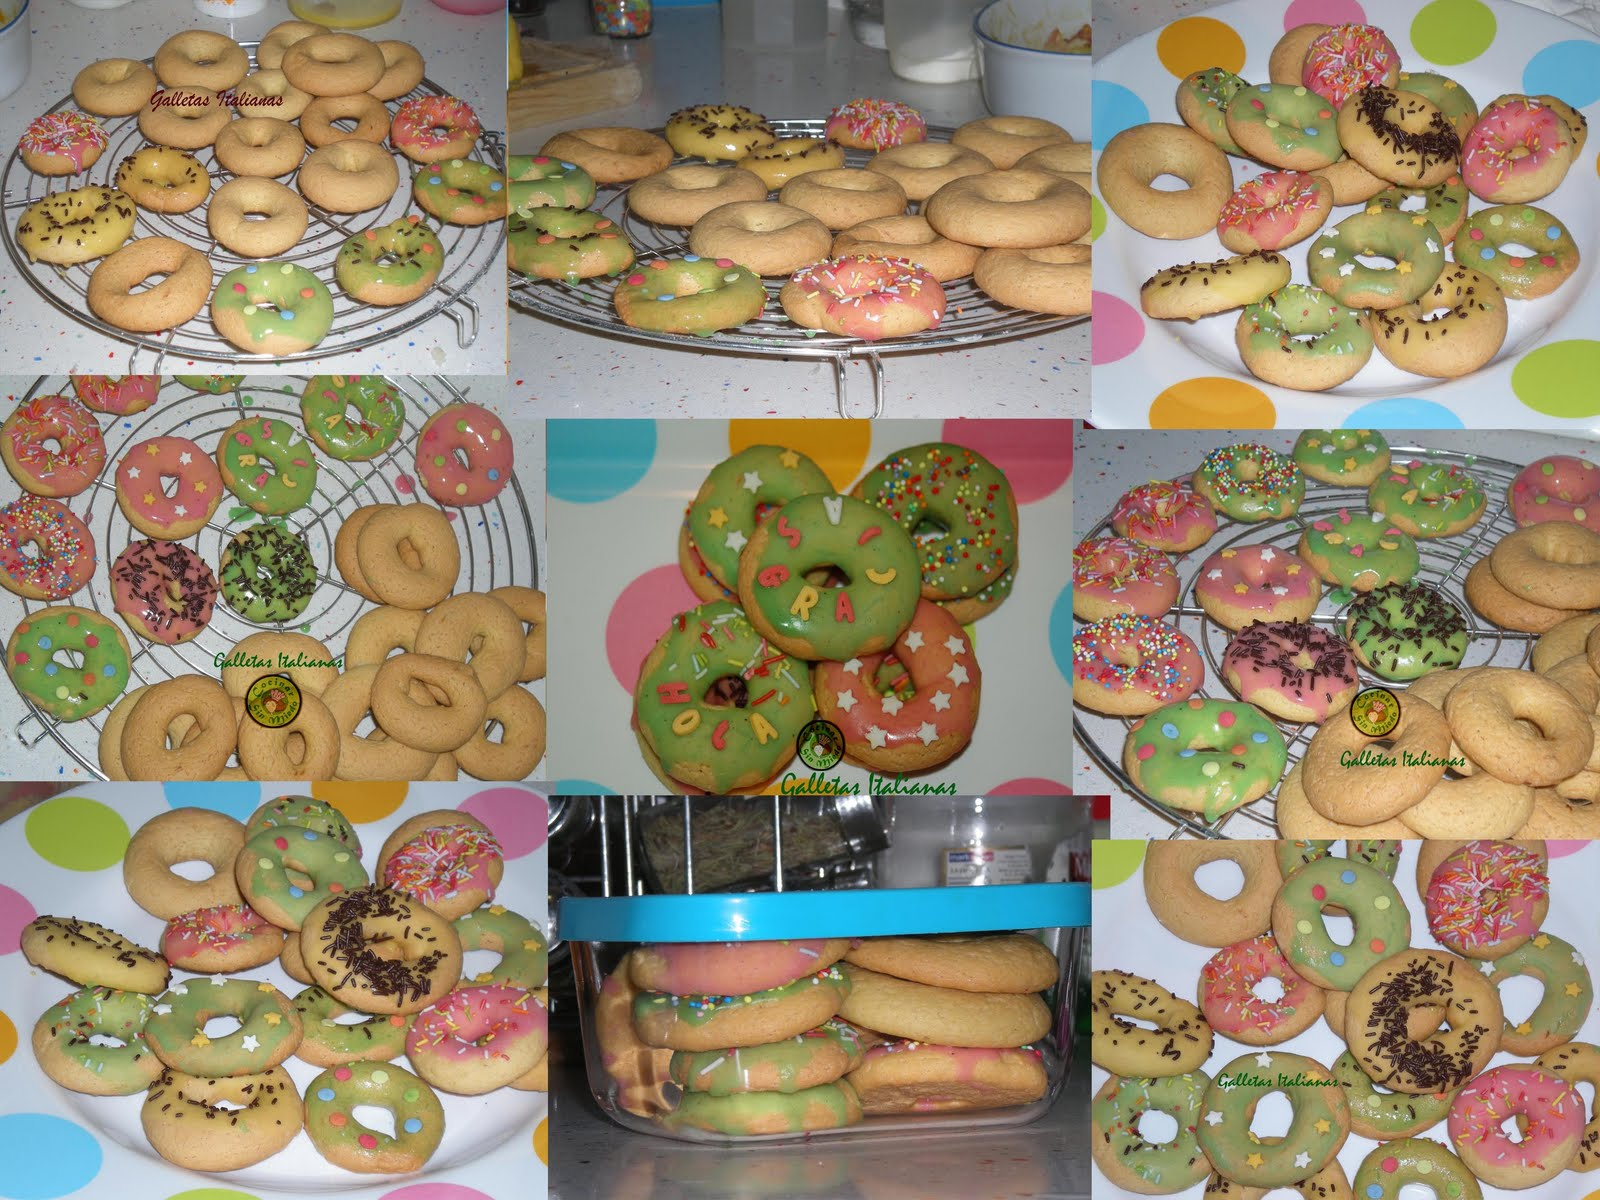 galletas italianas: